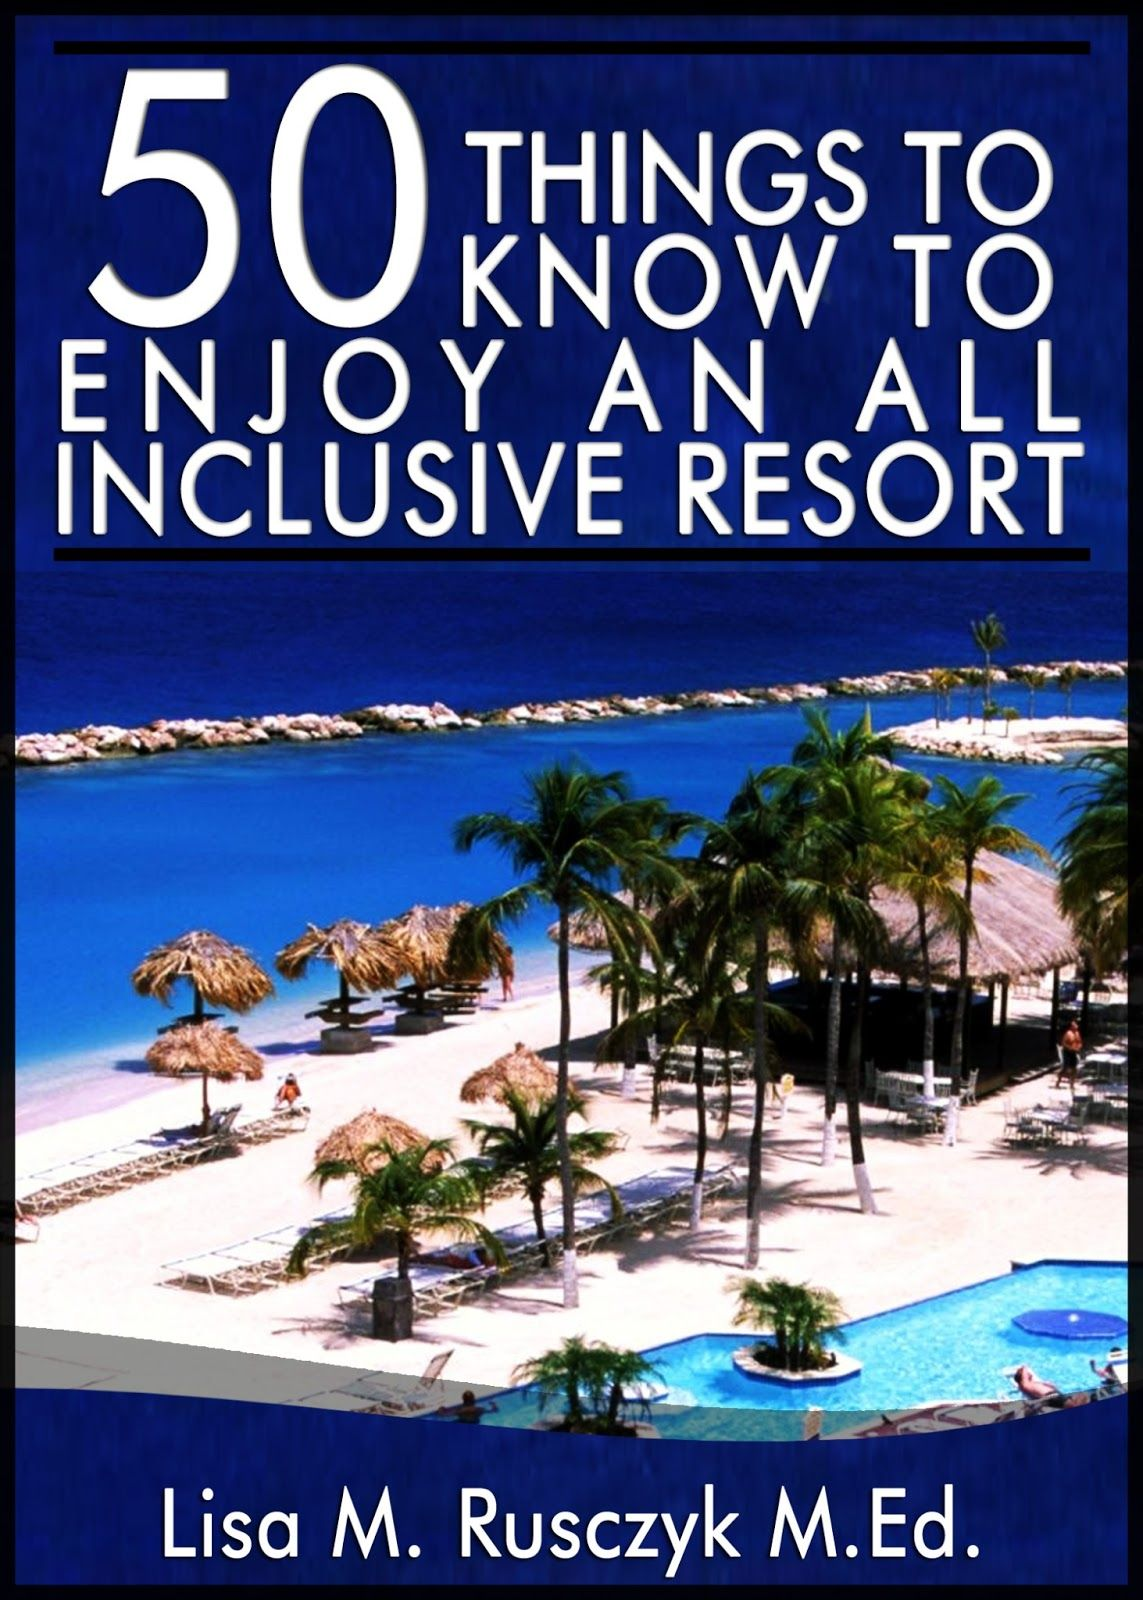 All inclusive vacations for singles over 50